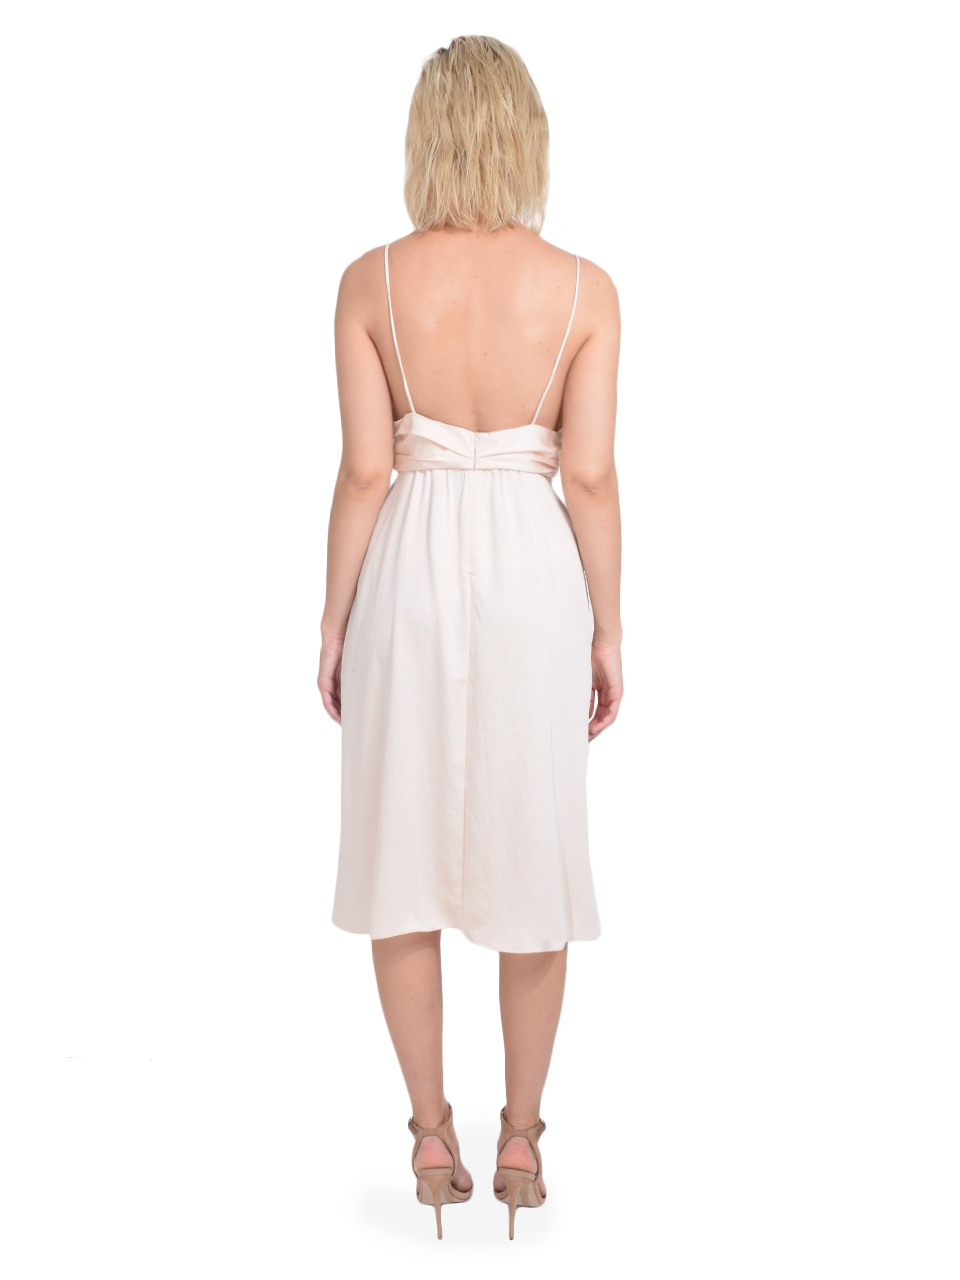 Ba&sh Dixie Dress in Champagne Back View